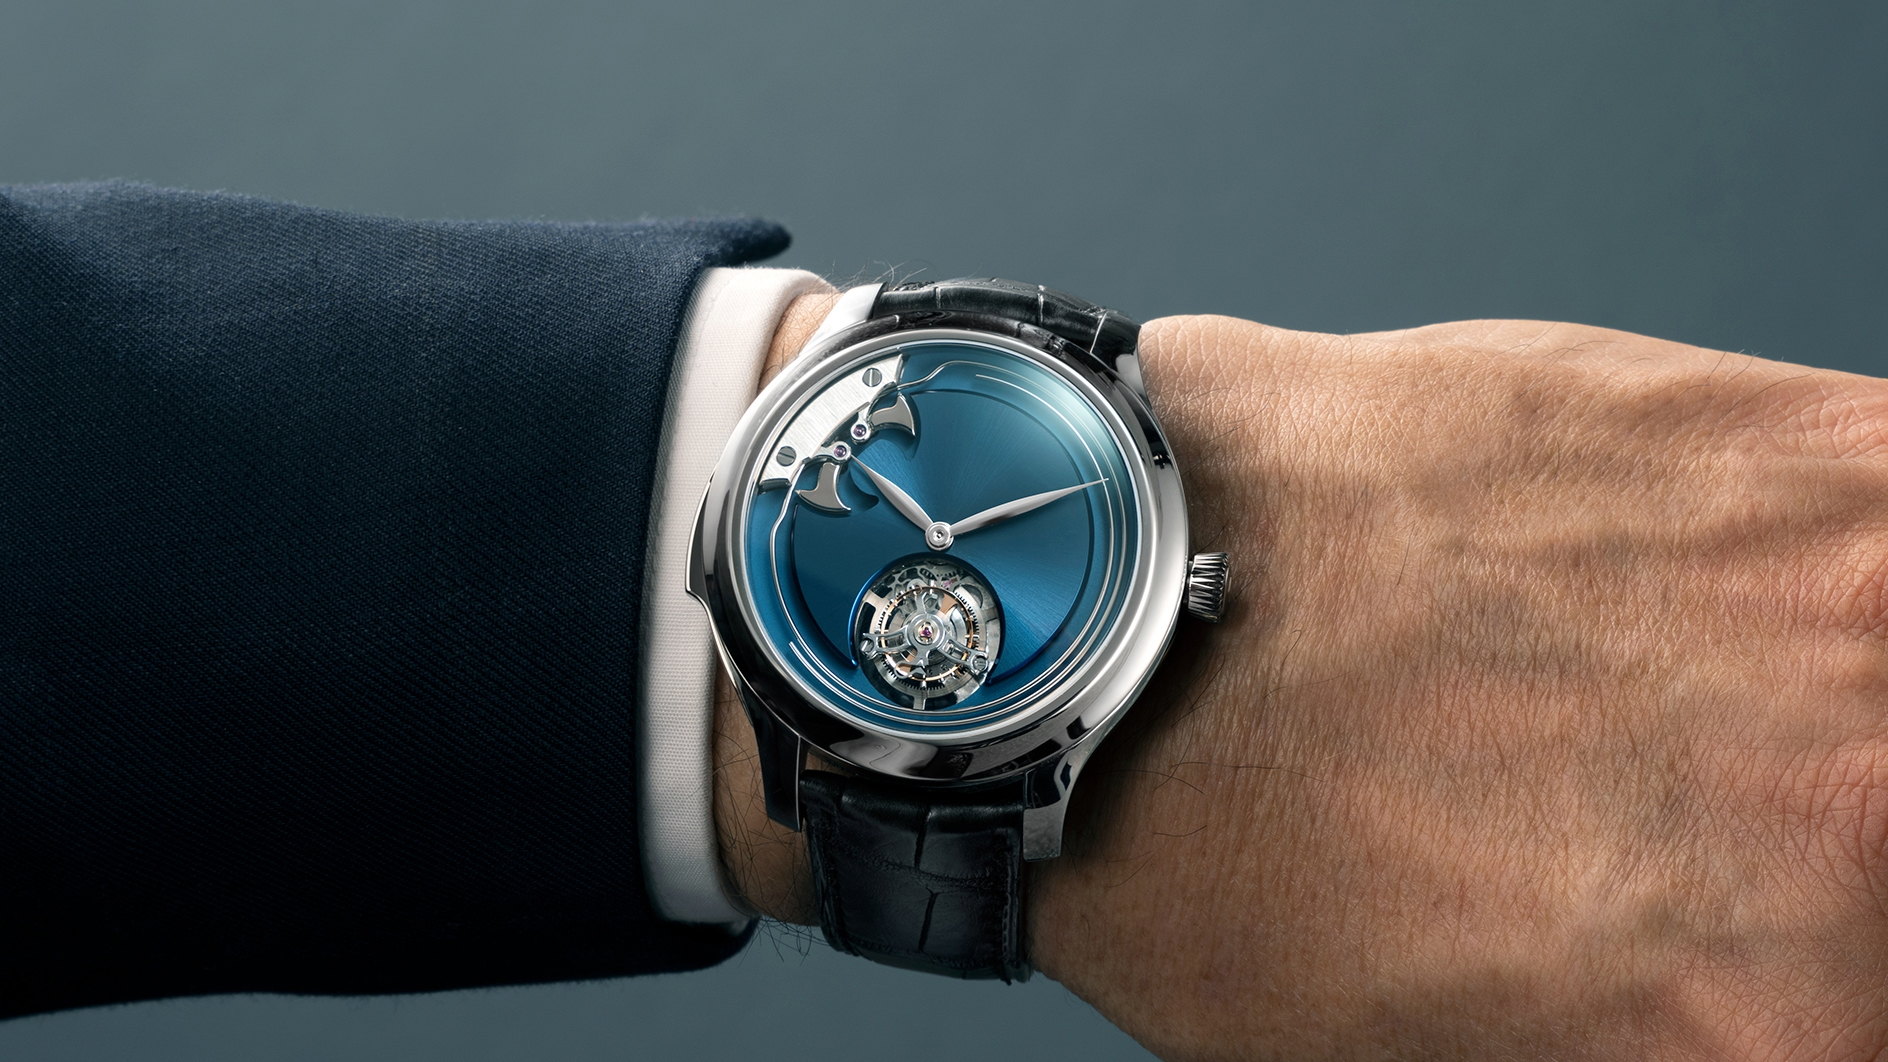 H.Moser & Cie. - Minute Repeater Tourbillon